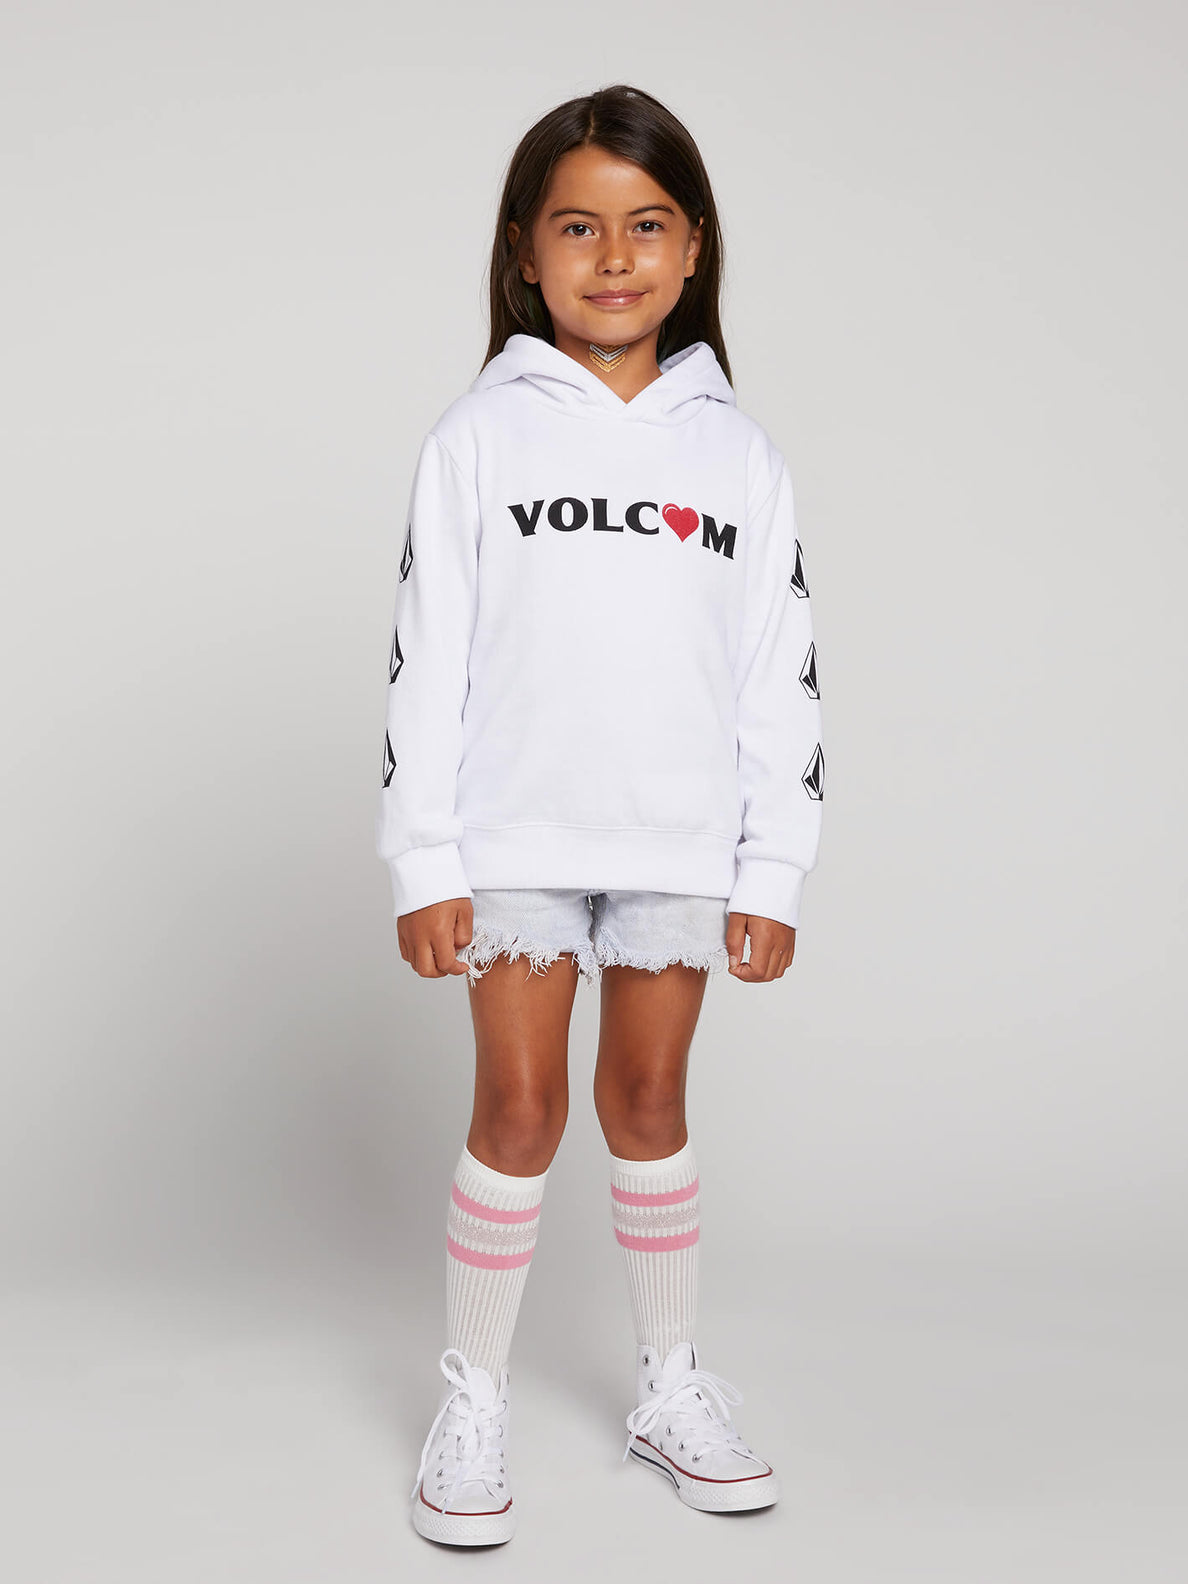 Little Girls Knew Wave Hoodie In White, Front View